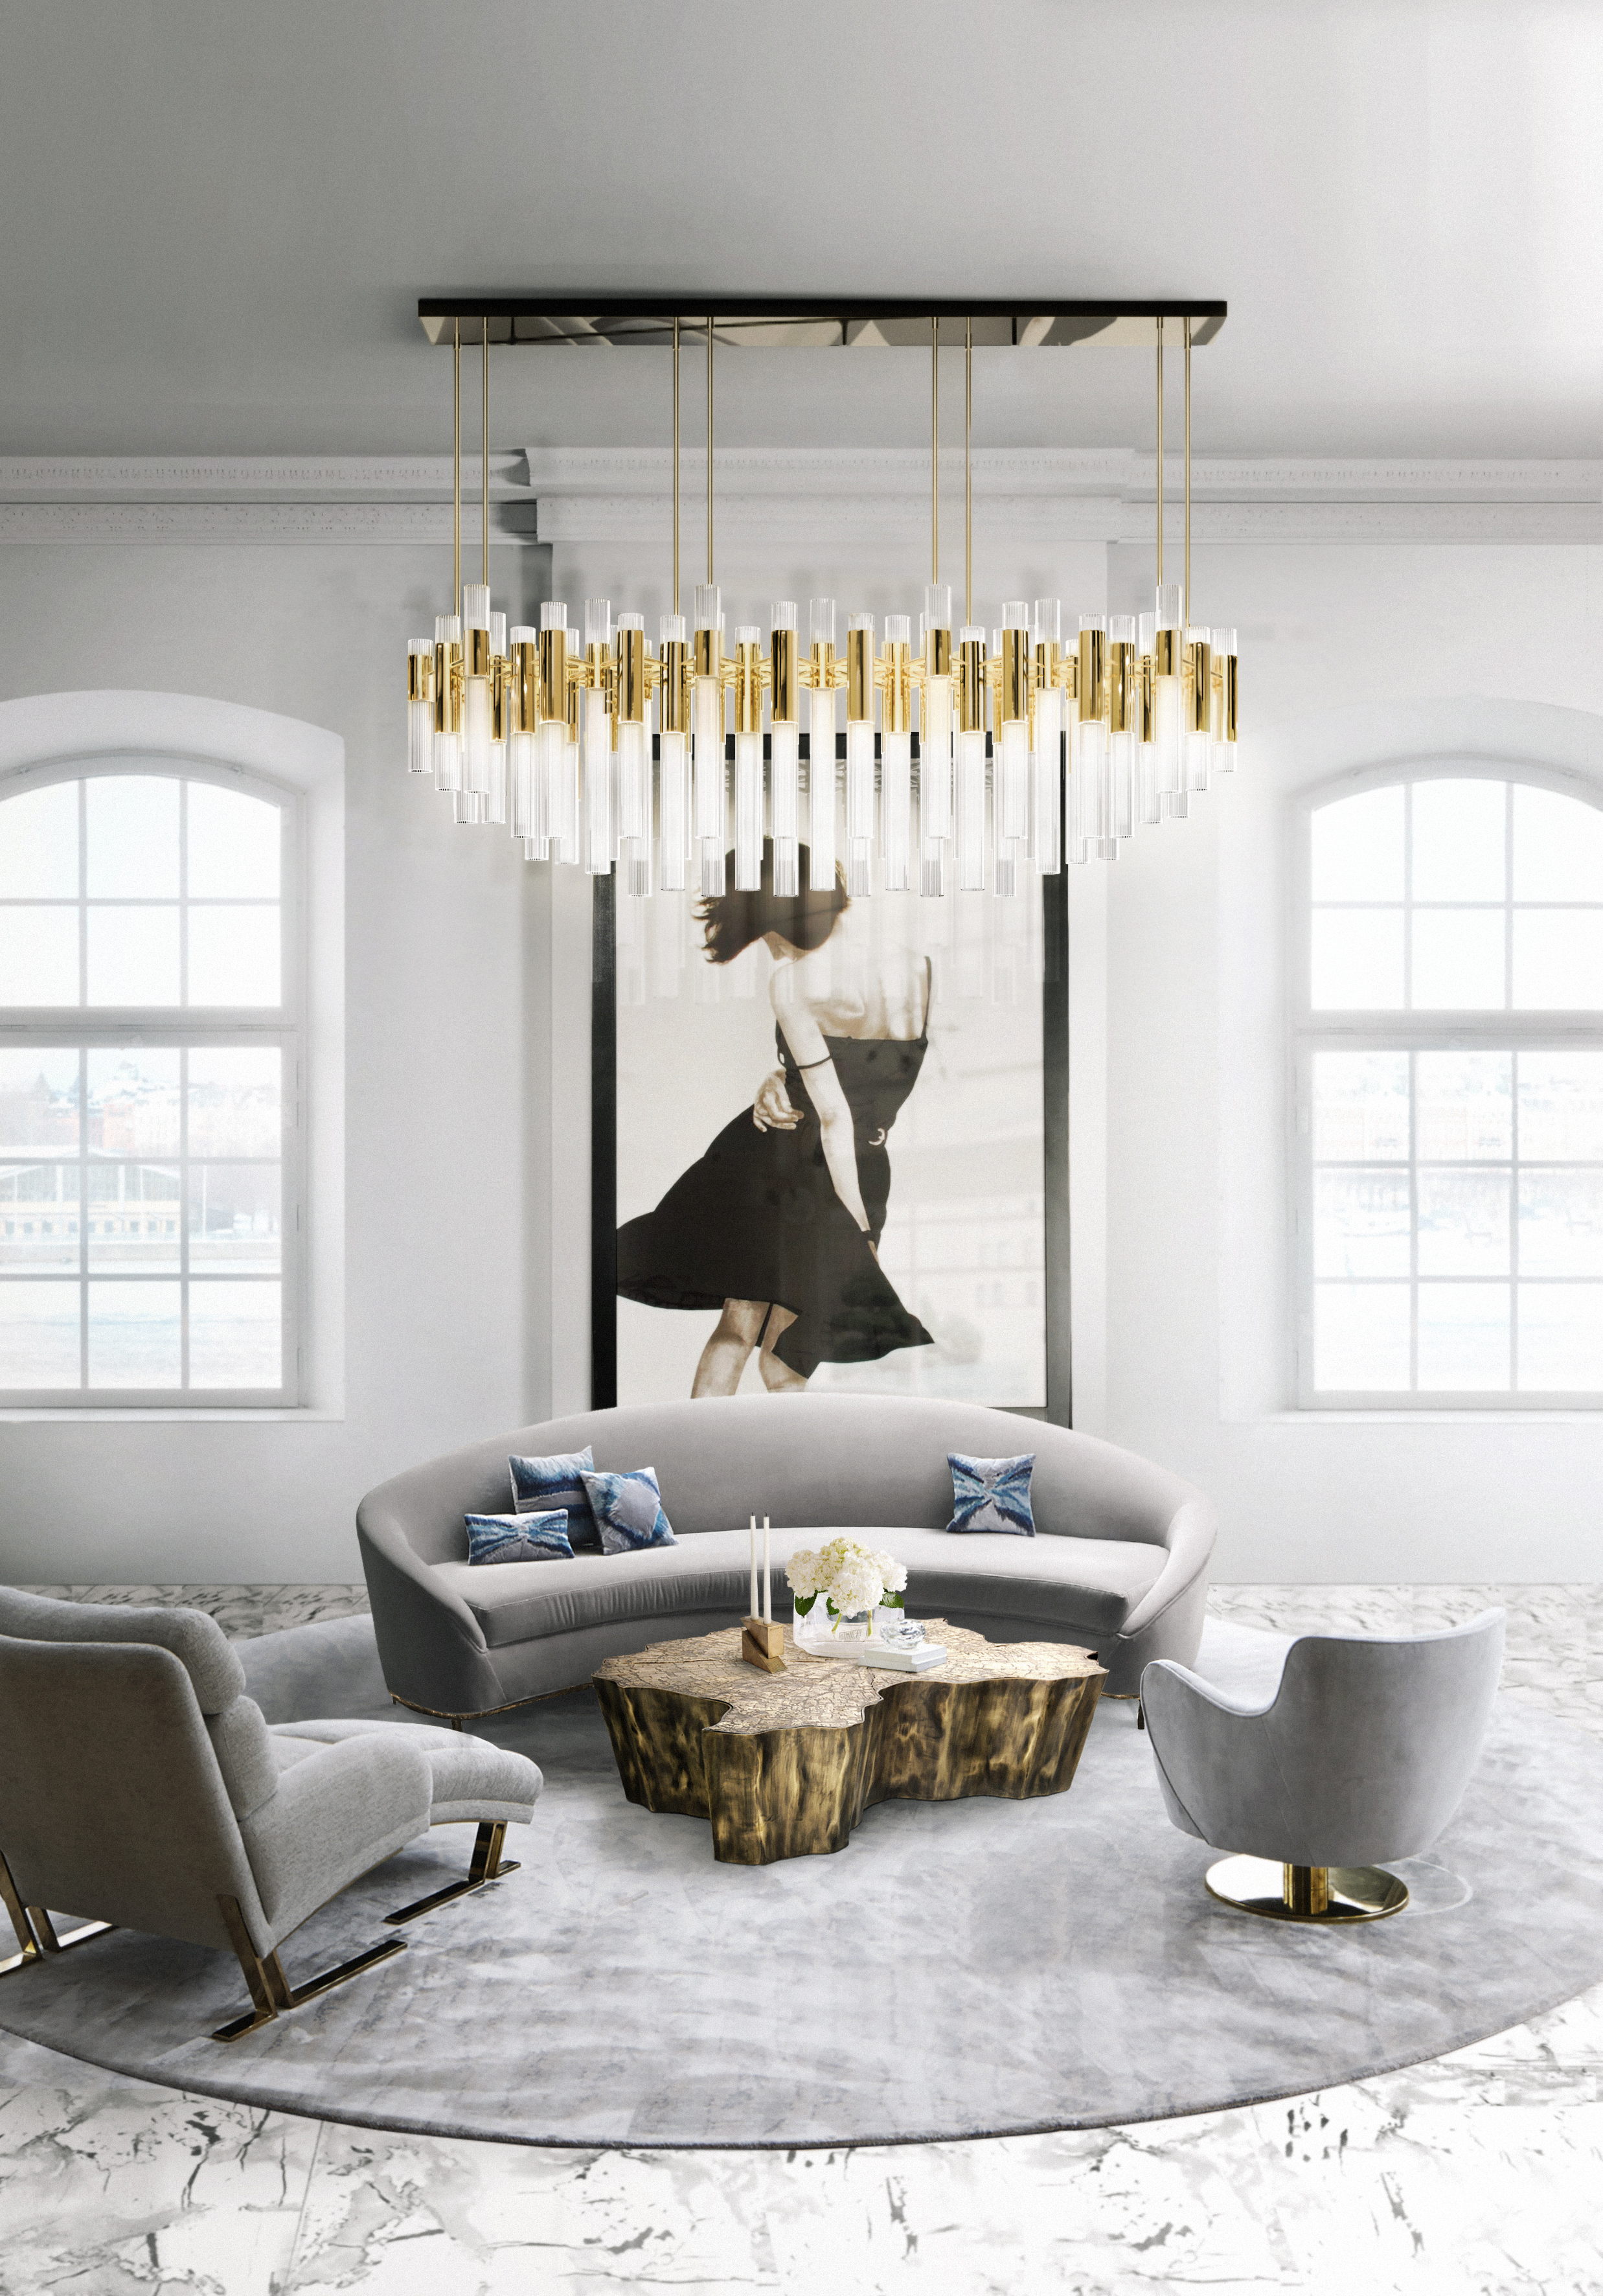 Waterfall Luxury Chandeliers luxury chandeliers Luxury Chandeliers: Luxxu's selection for splendor in any scenario Waterfall Chandelier